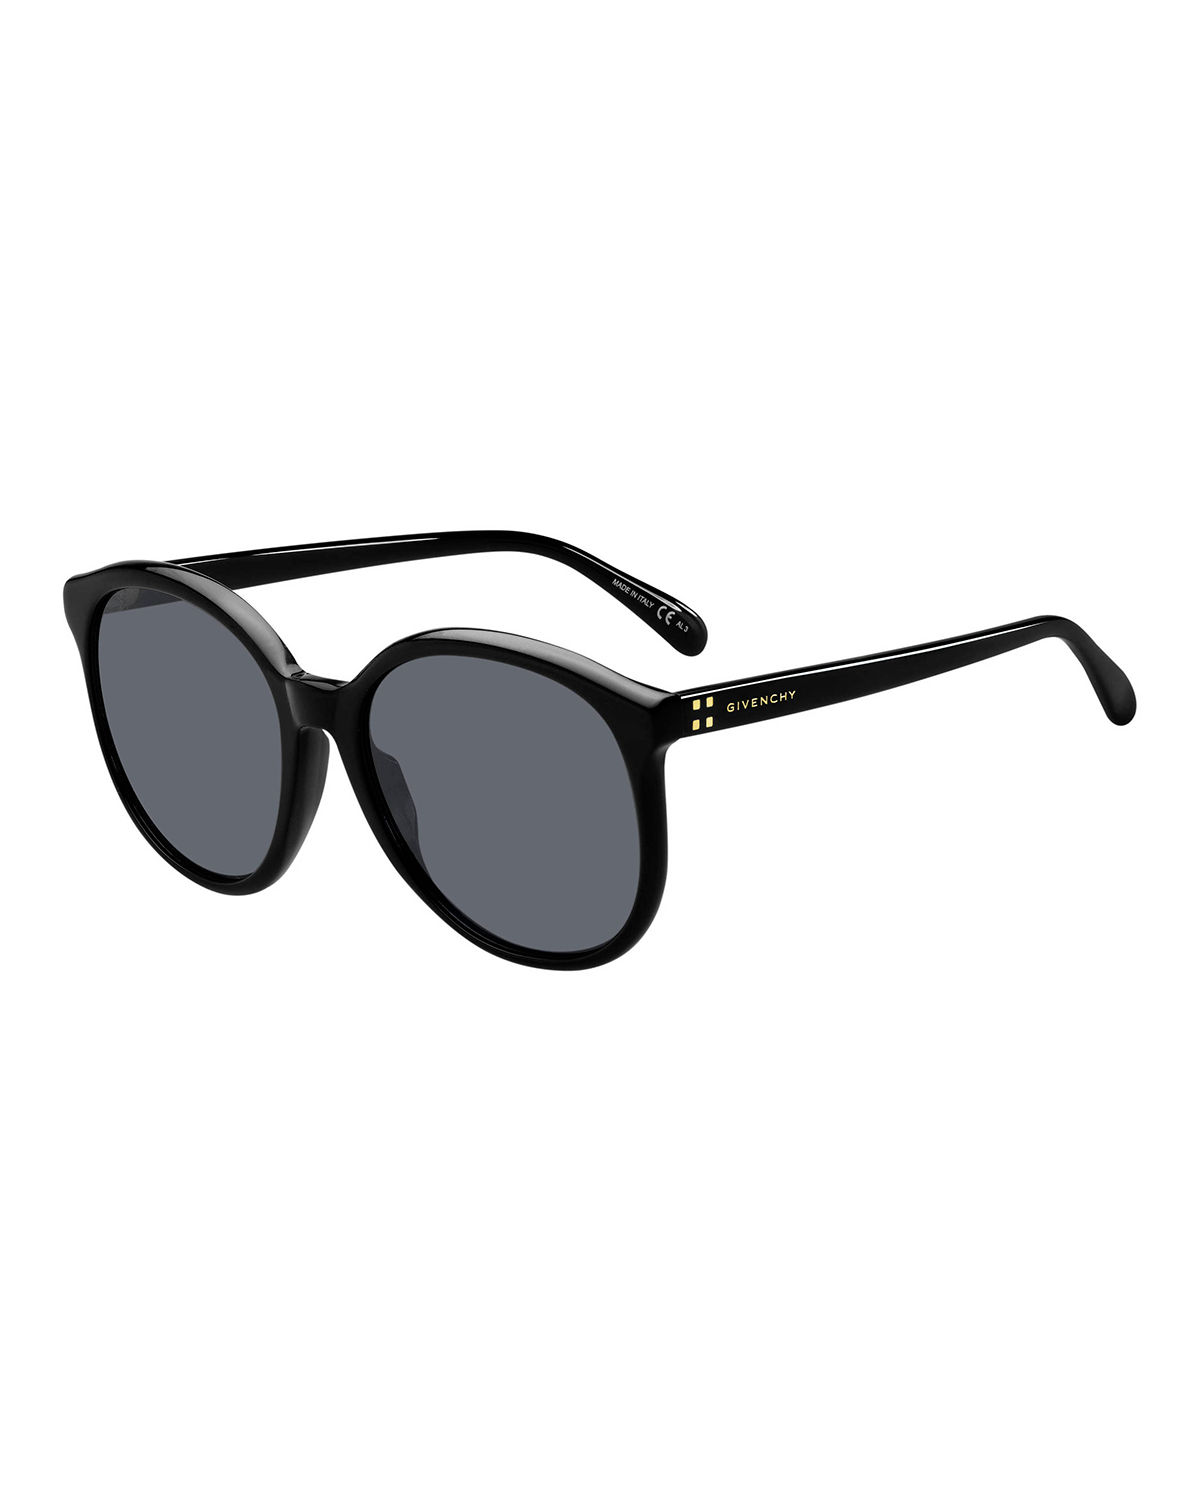 a357436908 Givenchy Round Acetate Sunglasses